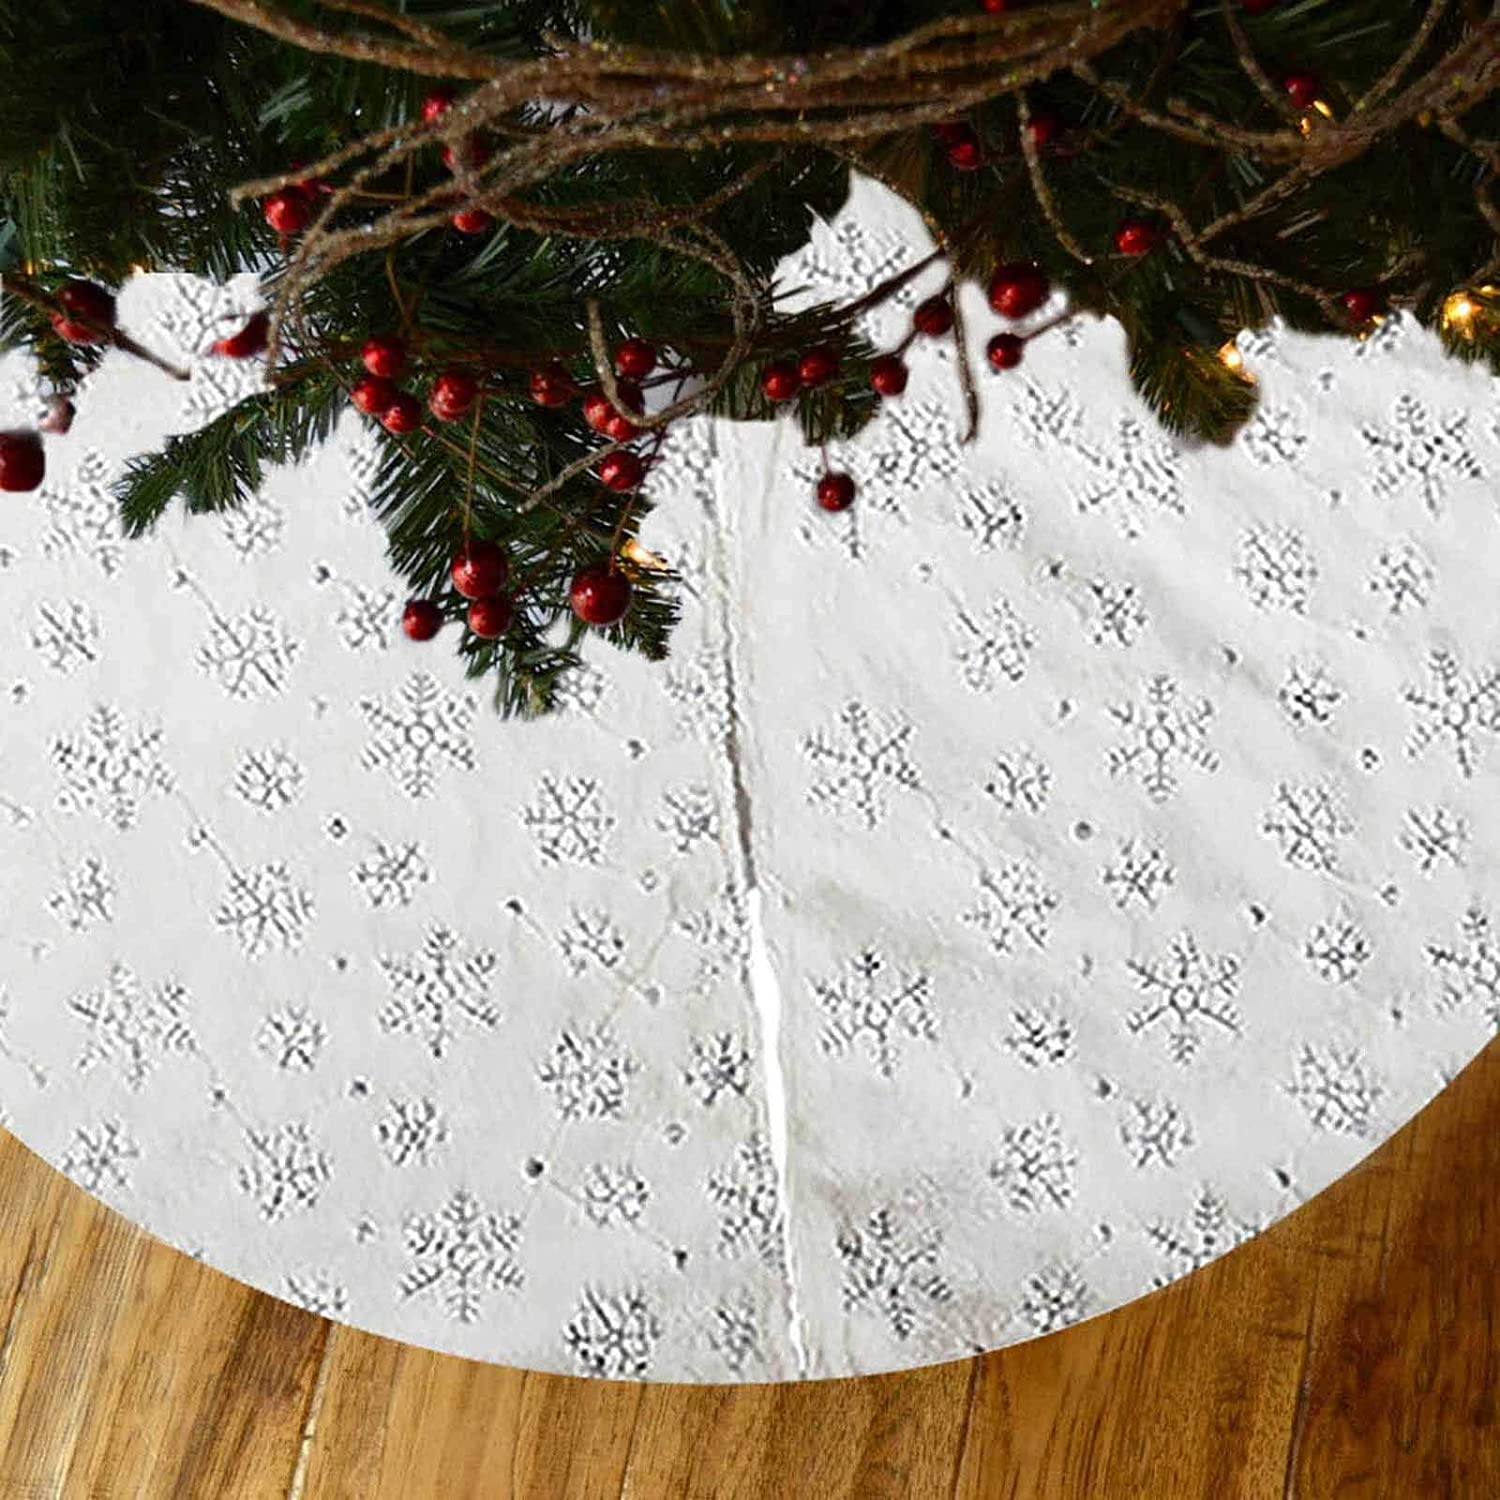 Luxury Plush Fabrics with Gold Sequin Snowflake Tree Mat for Christmas Decorations 36 Inches White Xmas Tree Skirt Vlovelife Christmas Tree Skirt